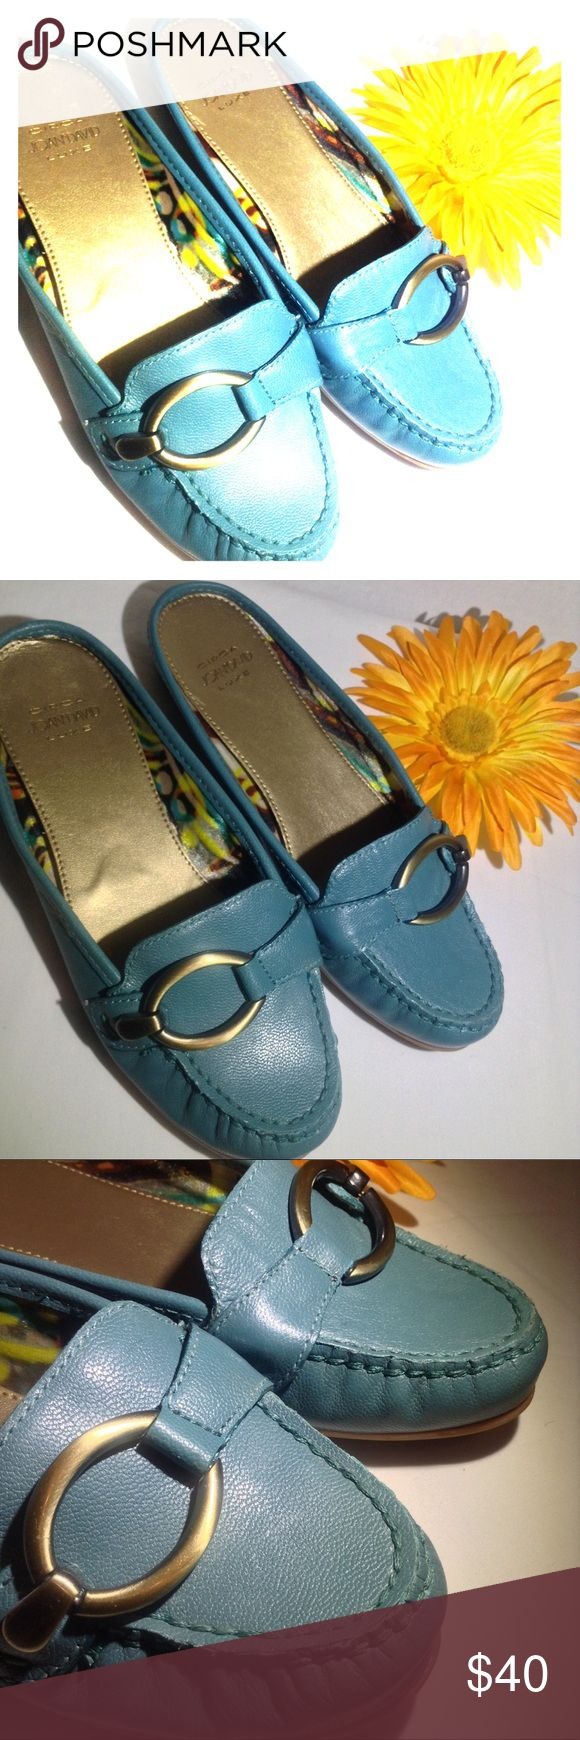 Circa Joan & David  Luxe Leather Shoes NWOT Light Turquoise Blue slides with gold buckle accent. Leather upper Size 5.5M Joan & David Shoes Flats & Loafers